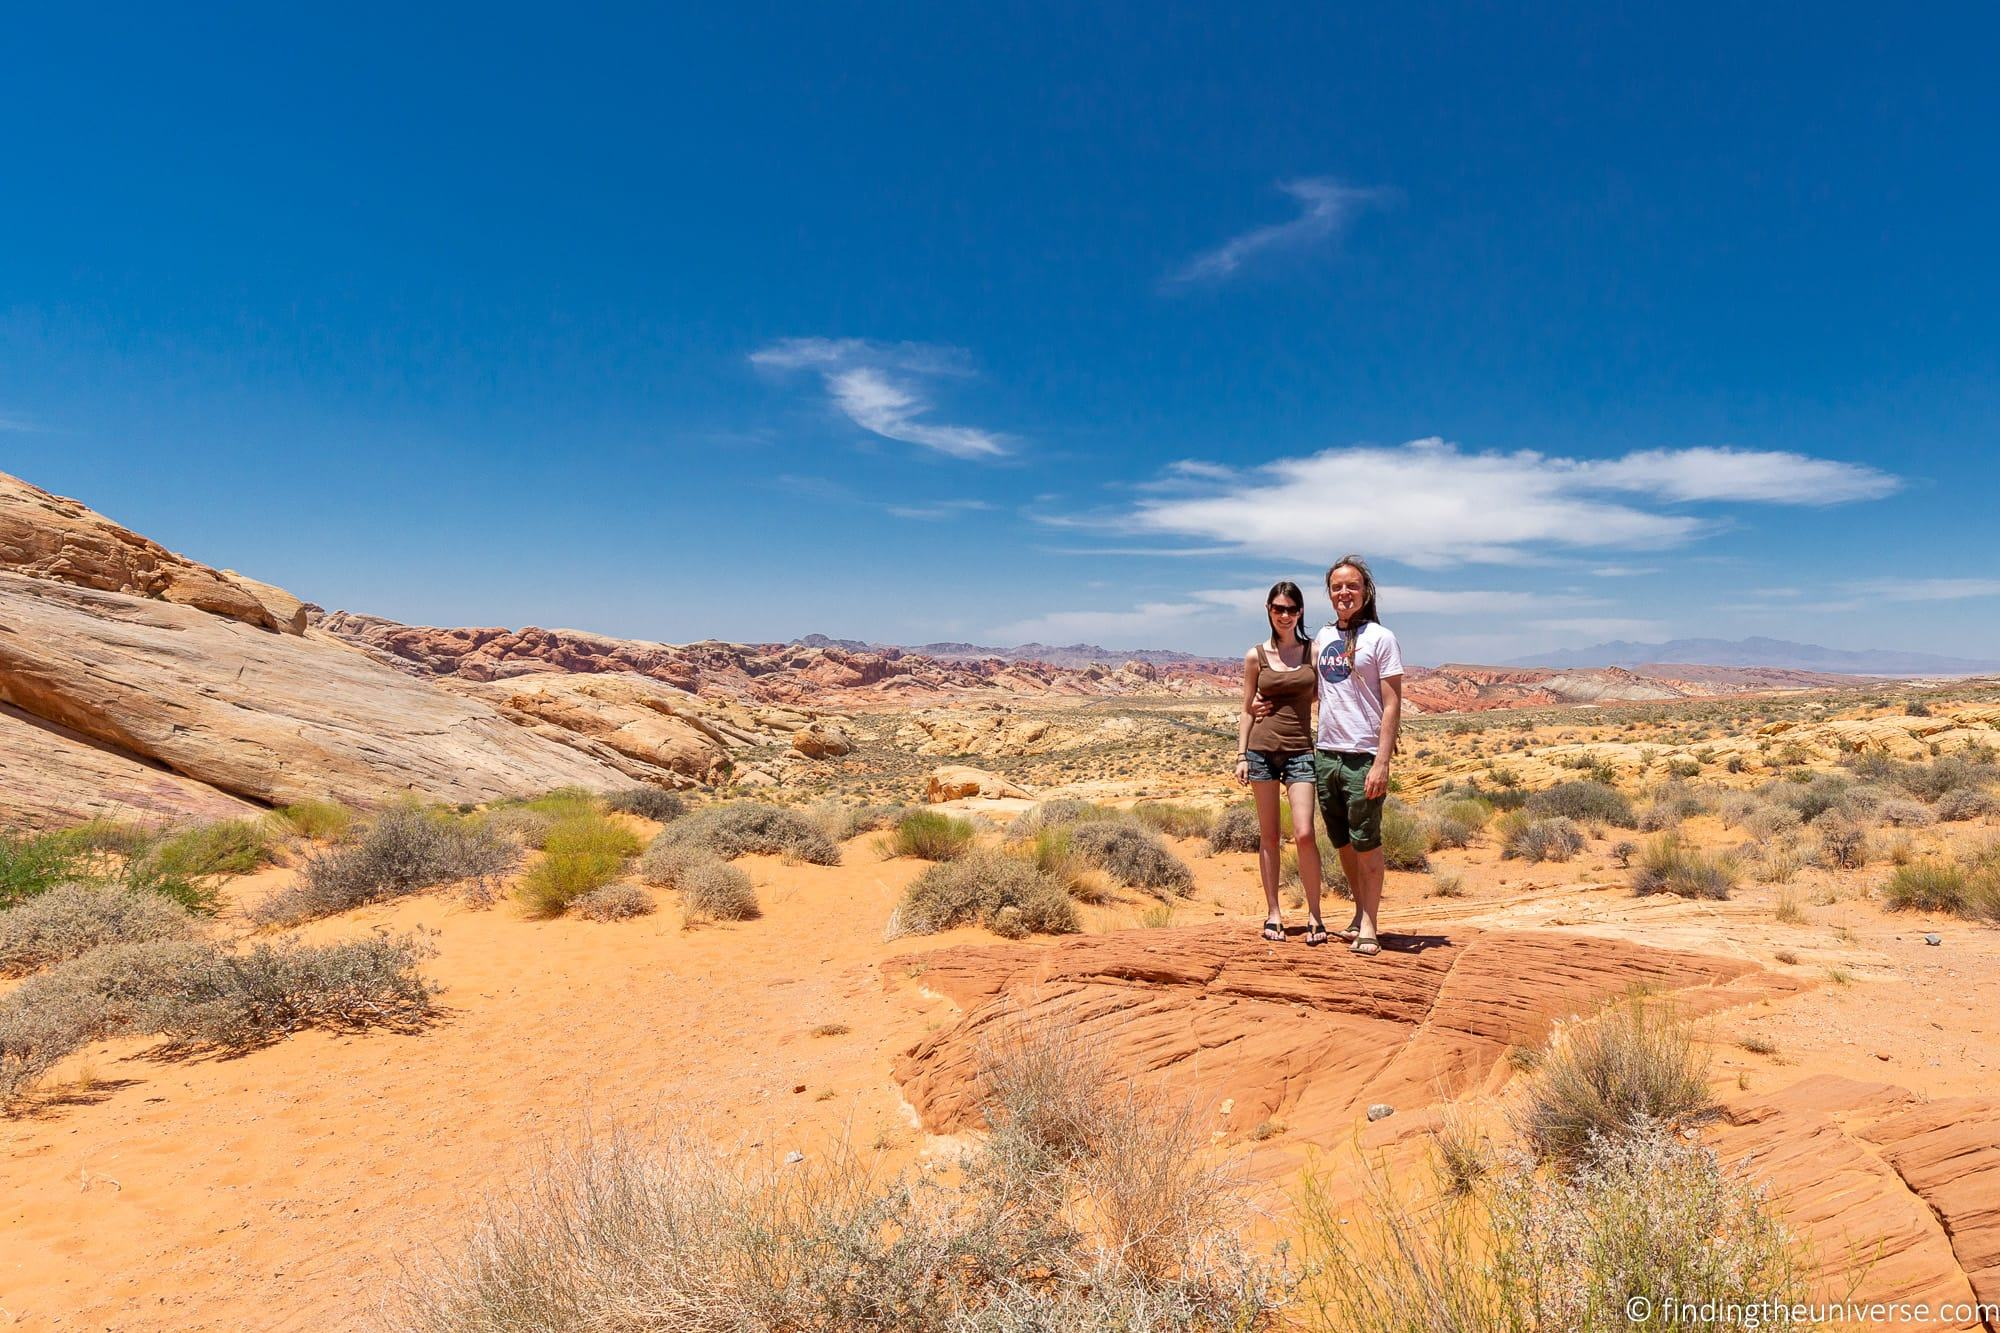 Laurence and Jess at Valley of Fire State Park